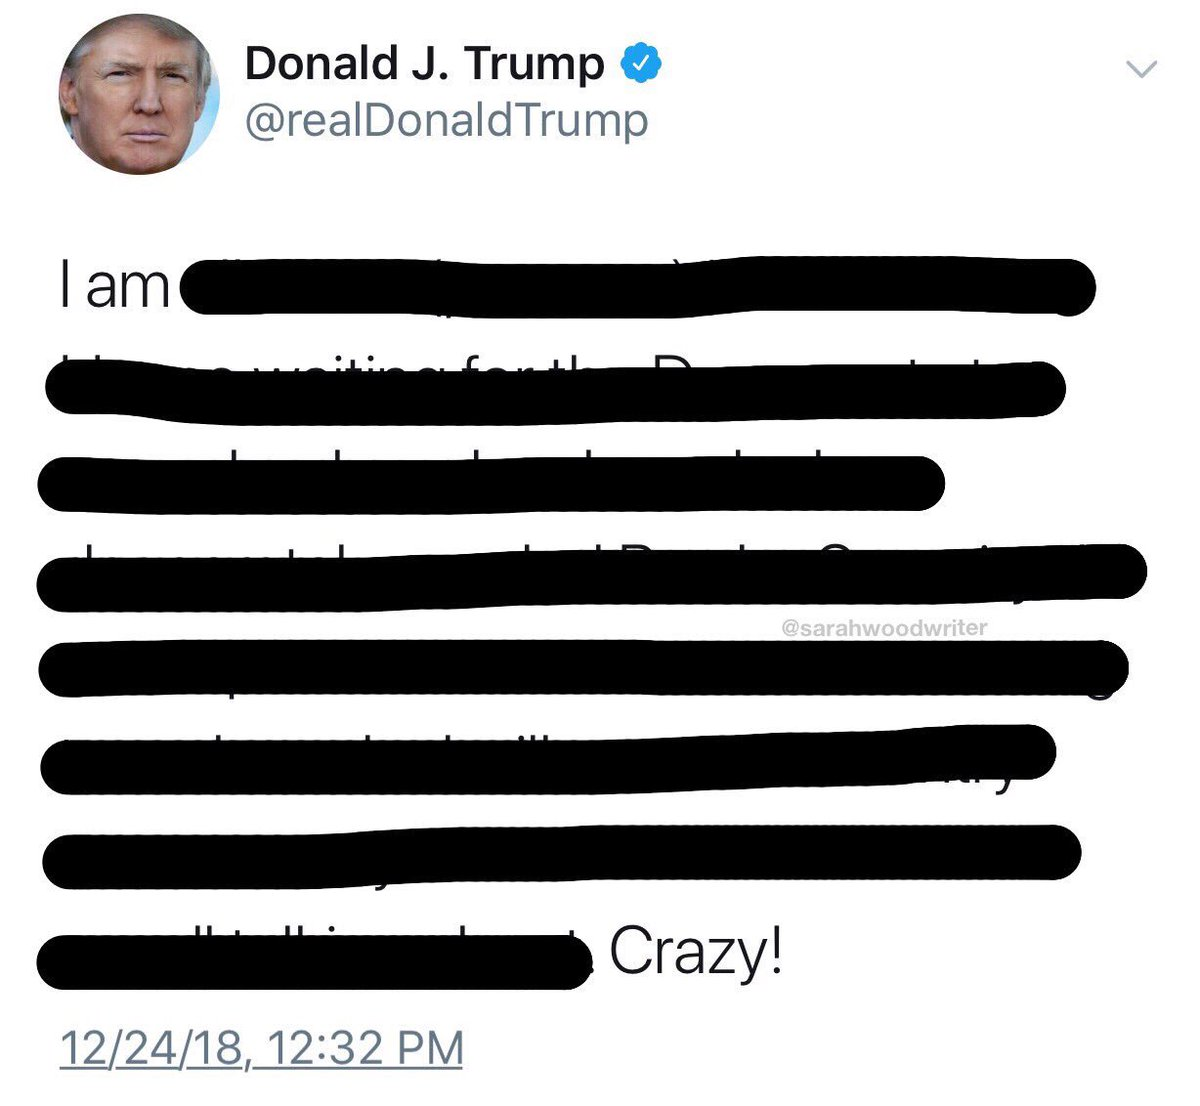 Fixed this.